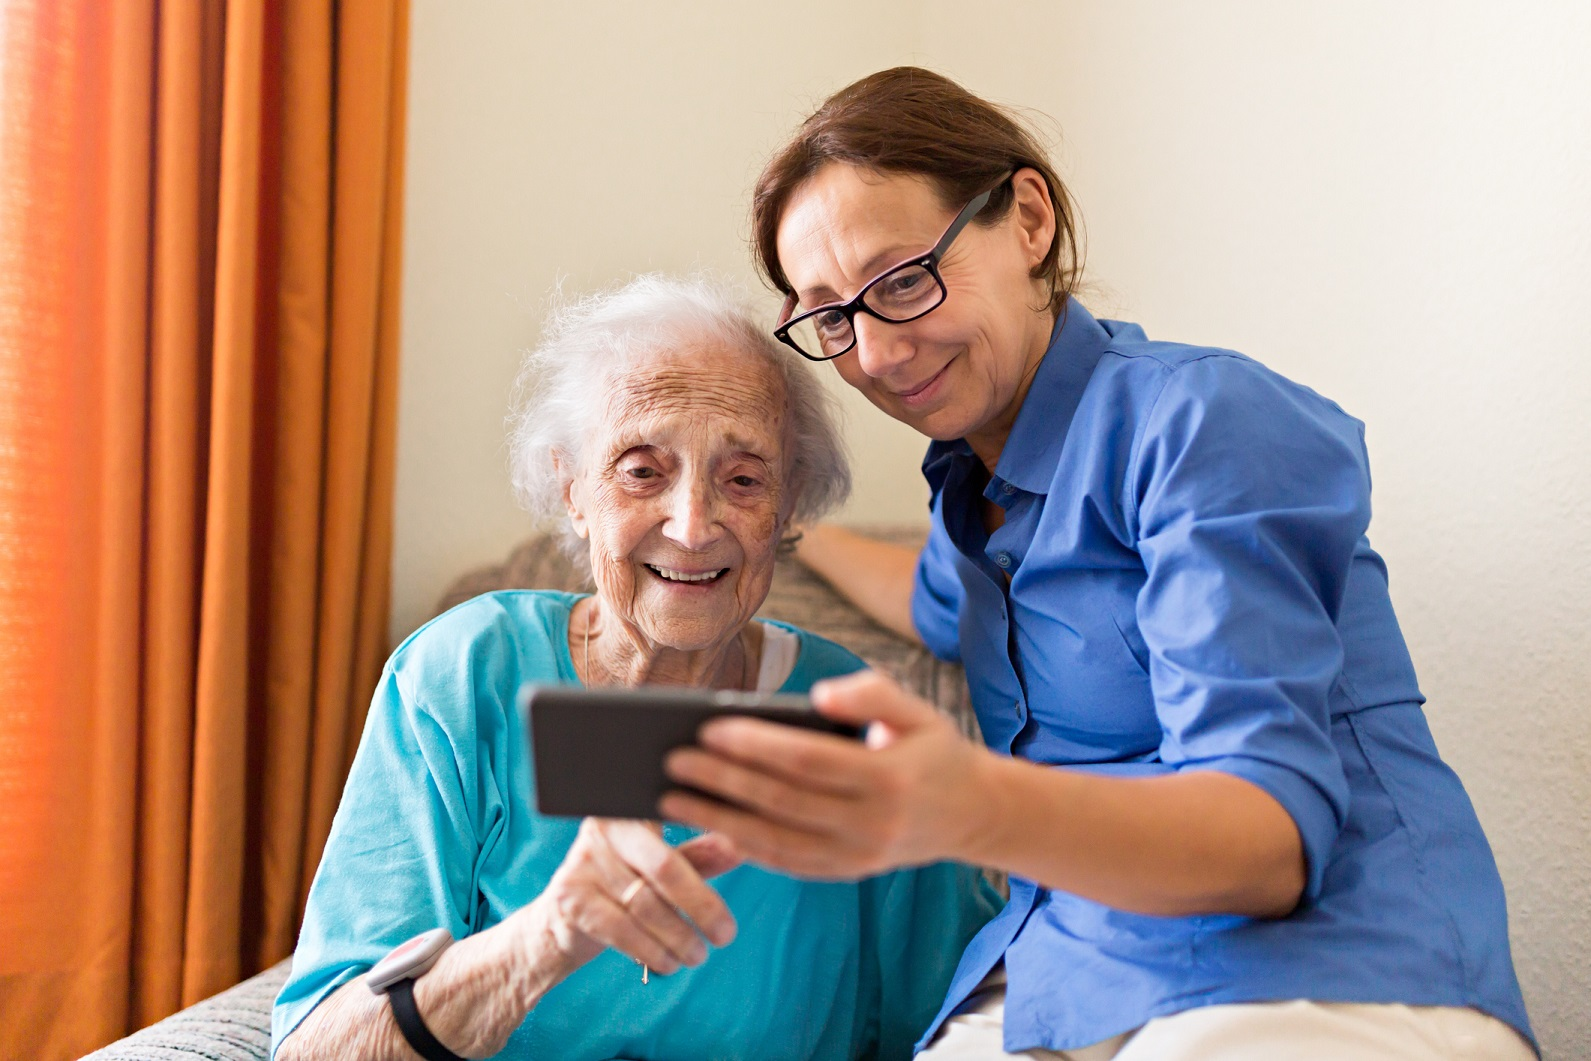 Senior woman with female caregiver